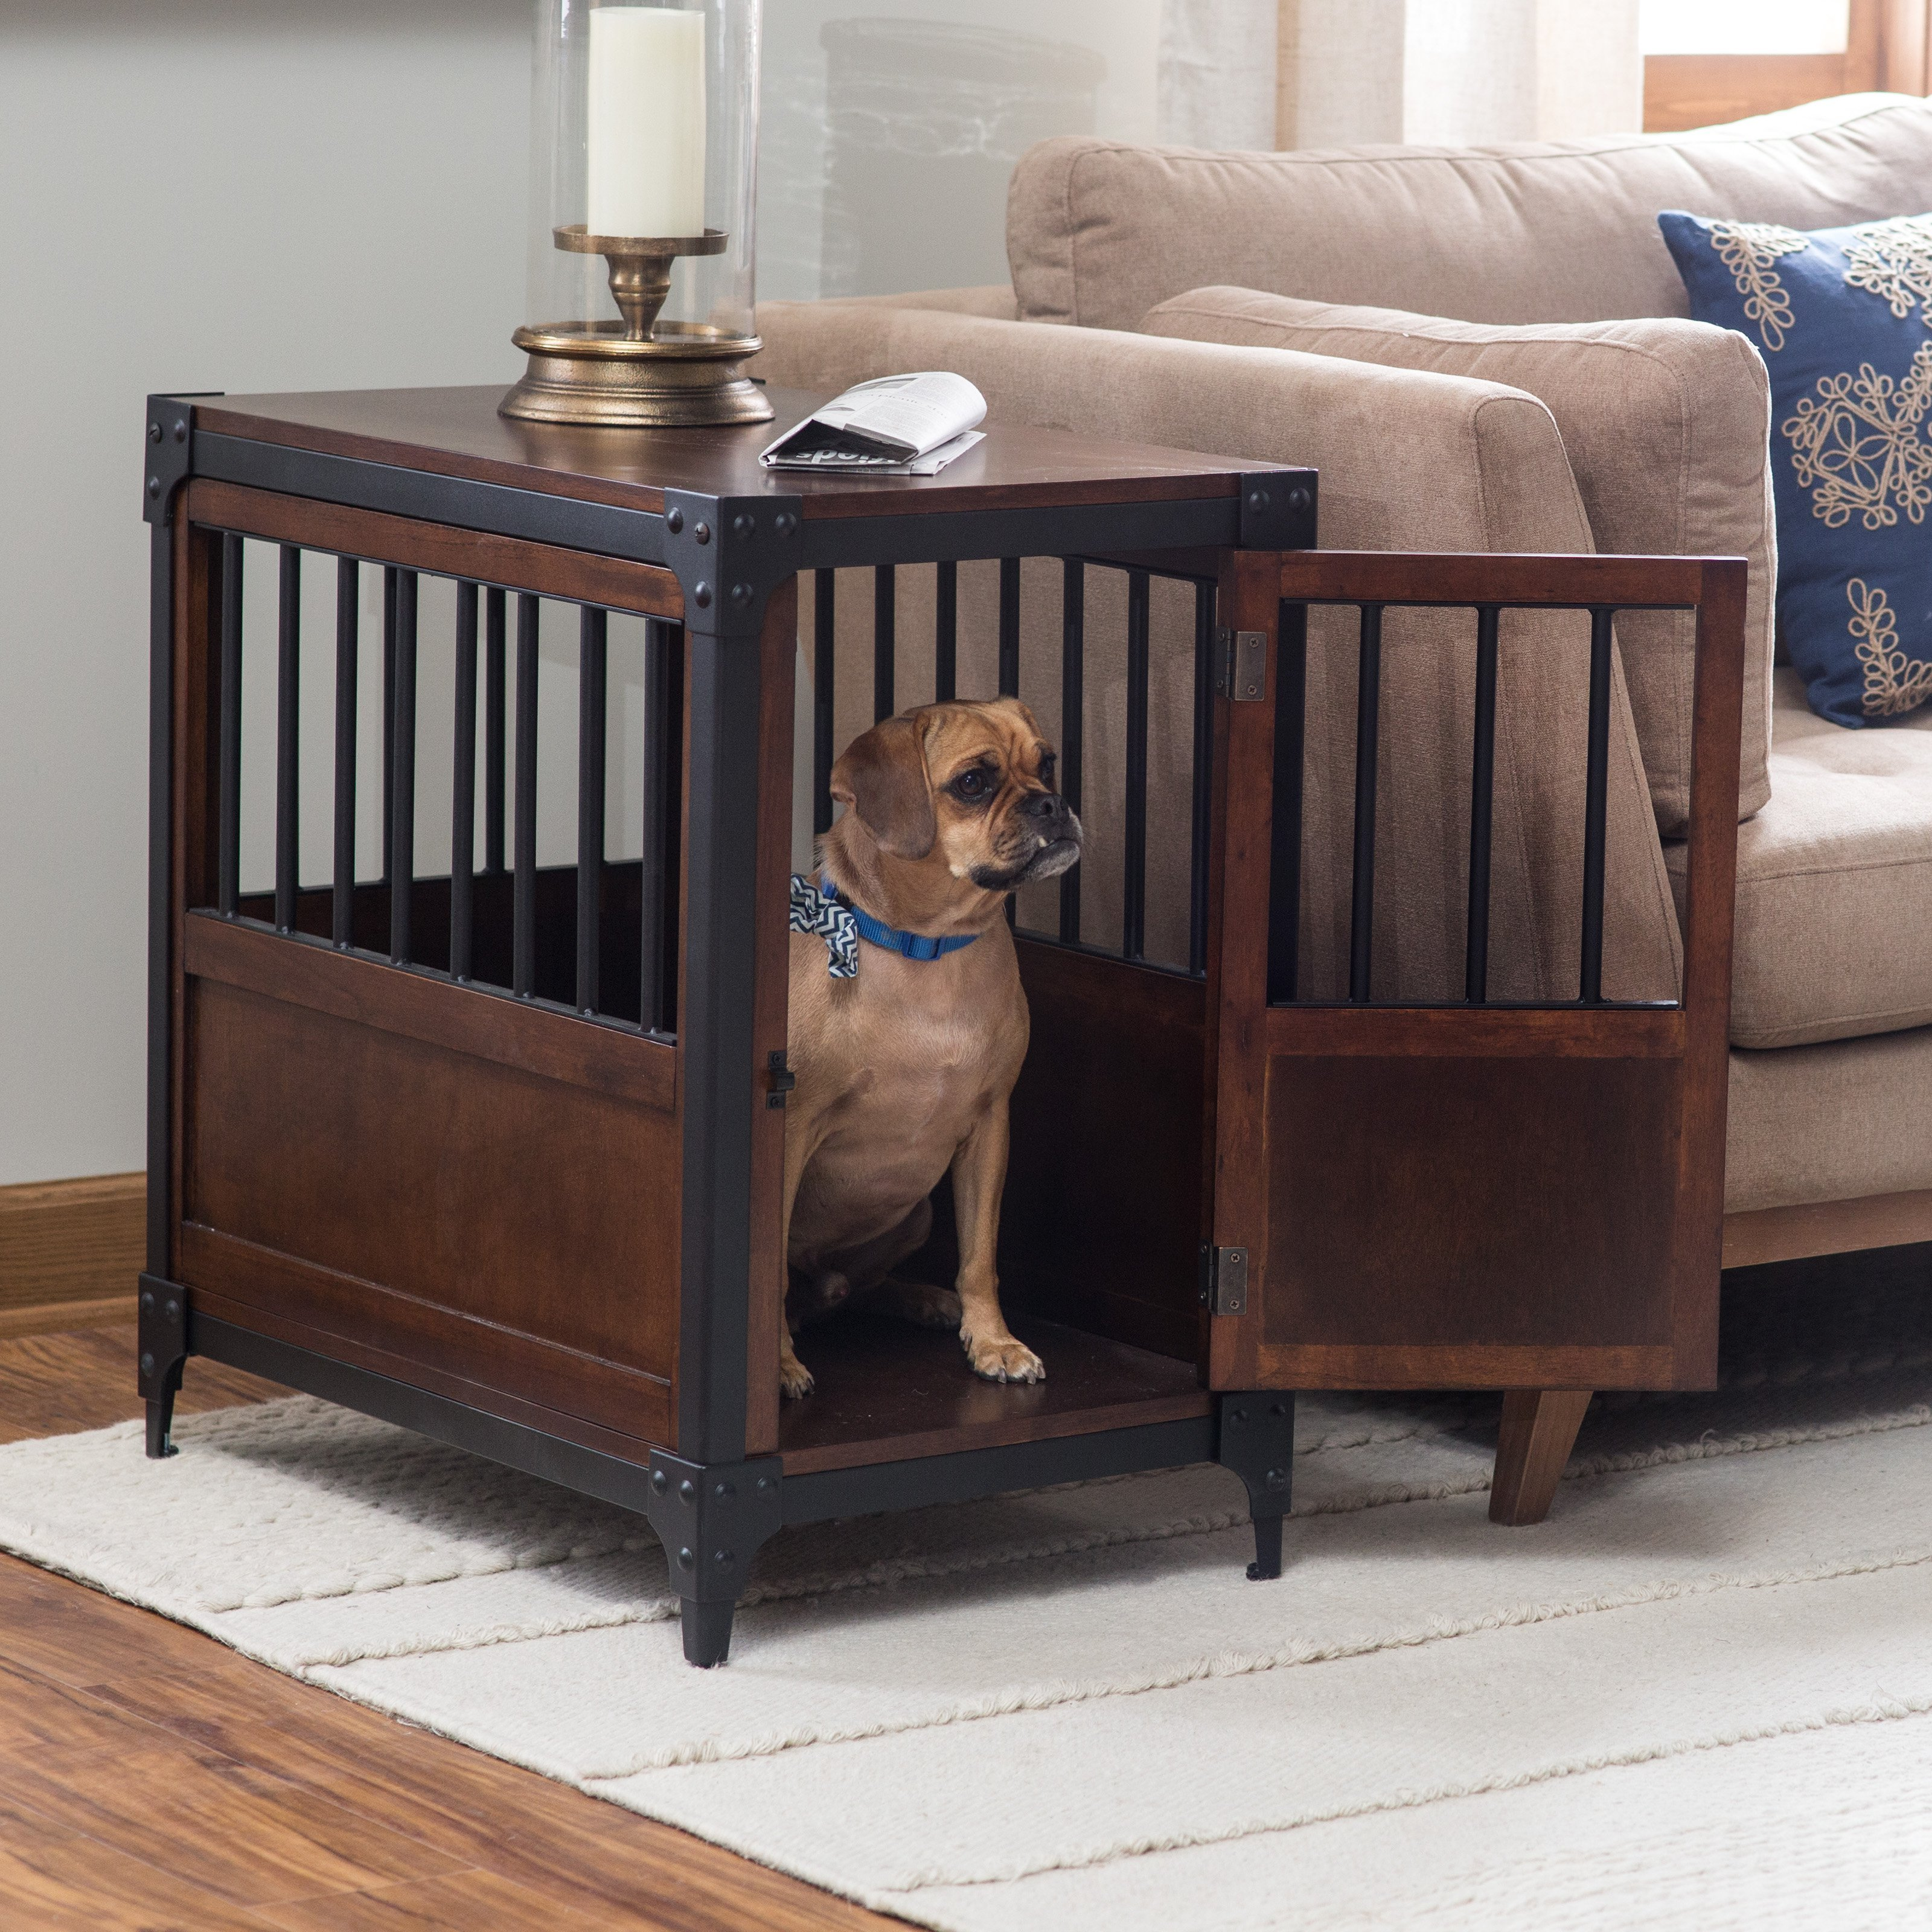 best types crates for dog training whole journal wooden crate end table boomer george trenton pet ethan allen trestle lamps dark tan leather sofa small brown rattan black garden